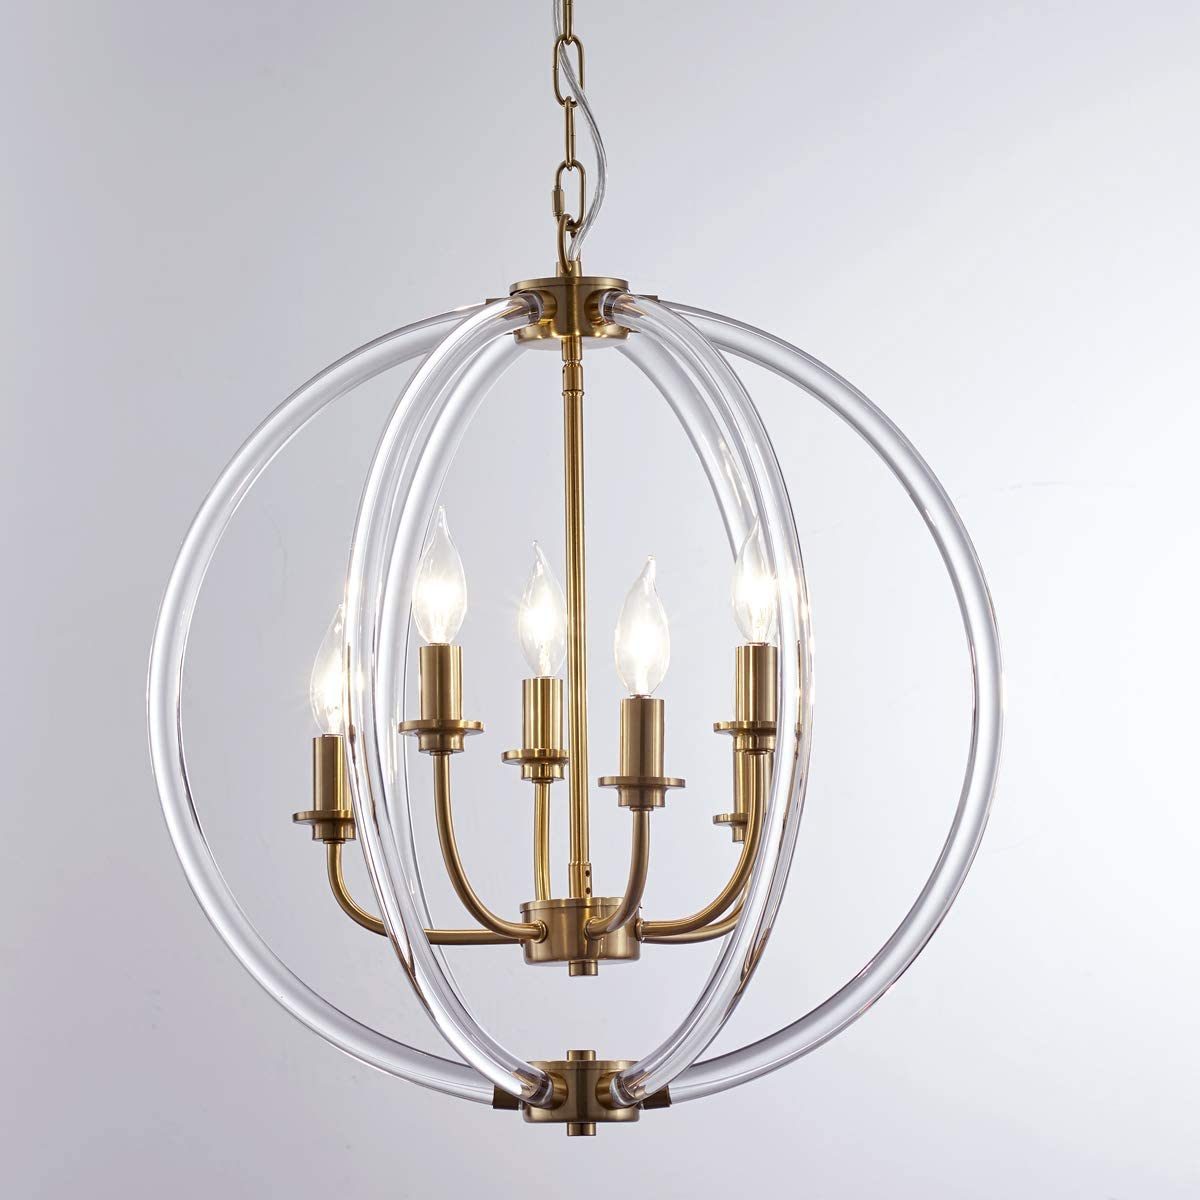 "Reaketon Clear Globe Pendant Light-6 Light D19.7"" LED Modern Chandelier Ceiling Light Fixture Dining Room Bedroom Foyer Entryway Required CH2012-6H"